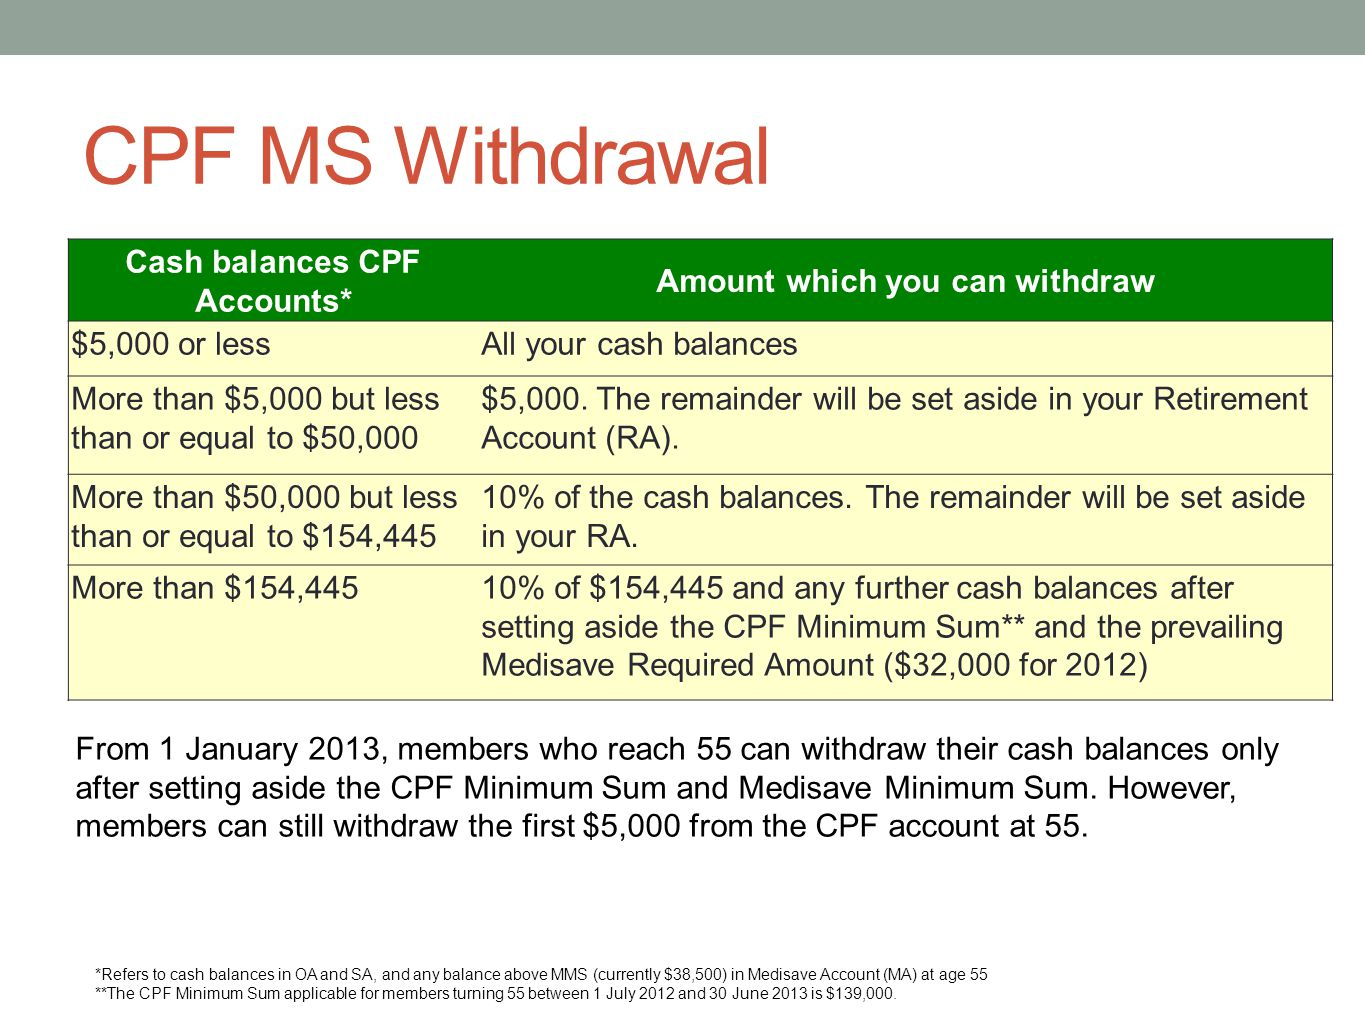 Cash balances CPF Accounts* Amount which you can withdraw